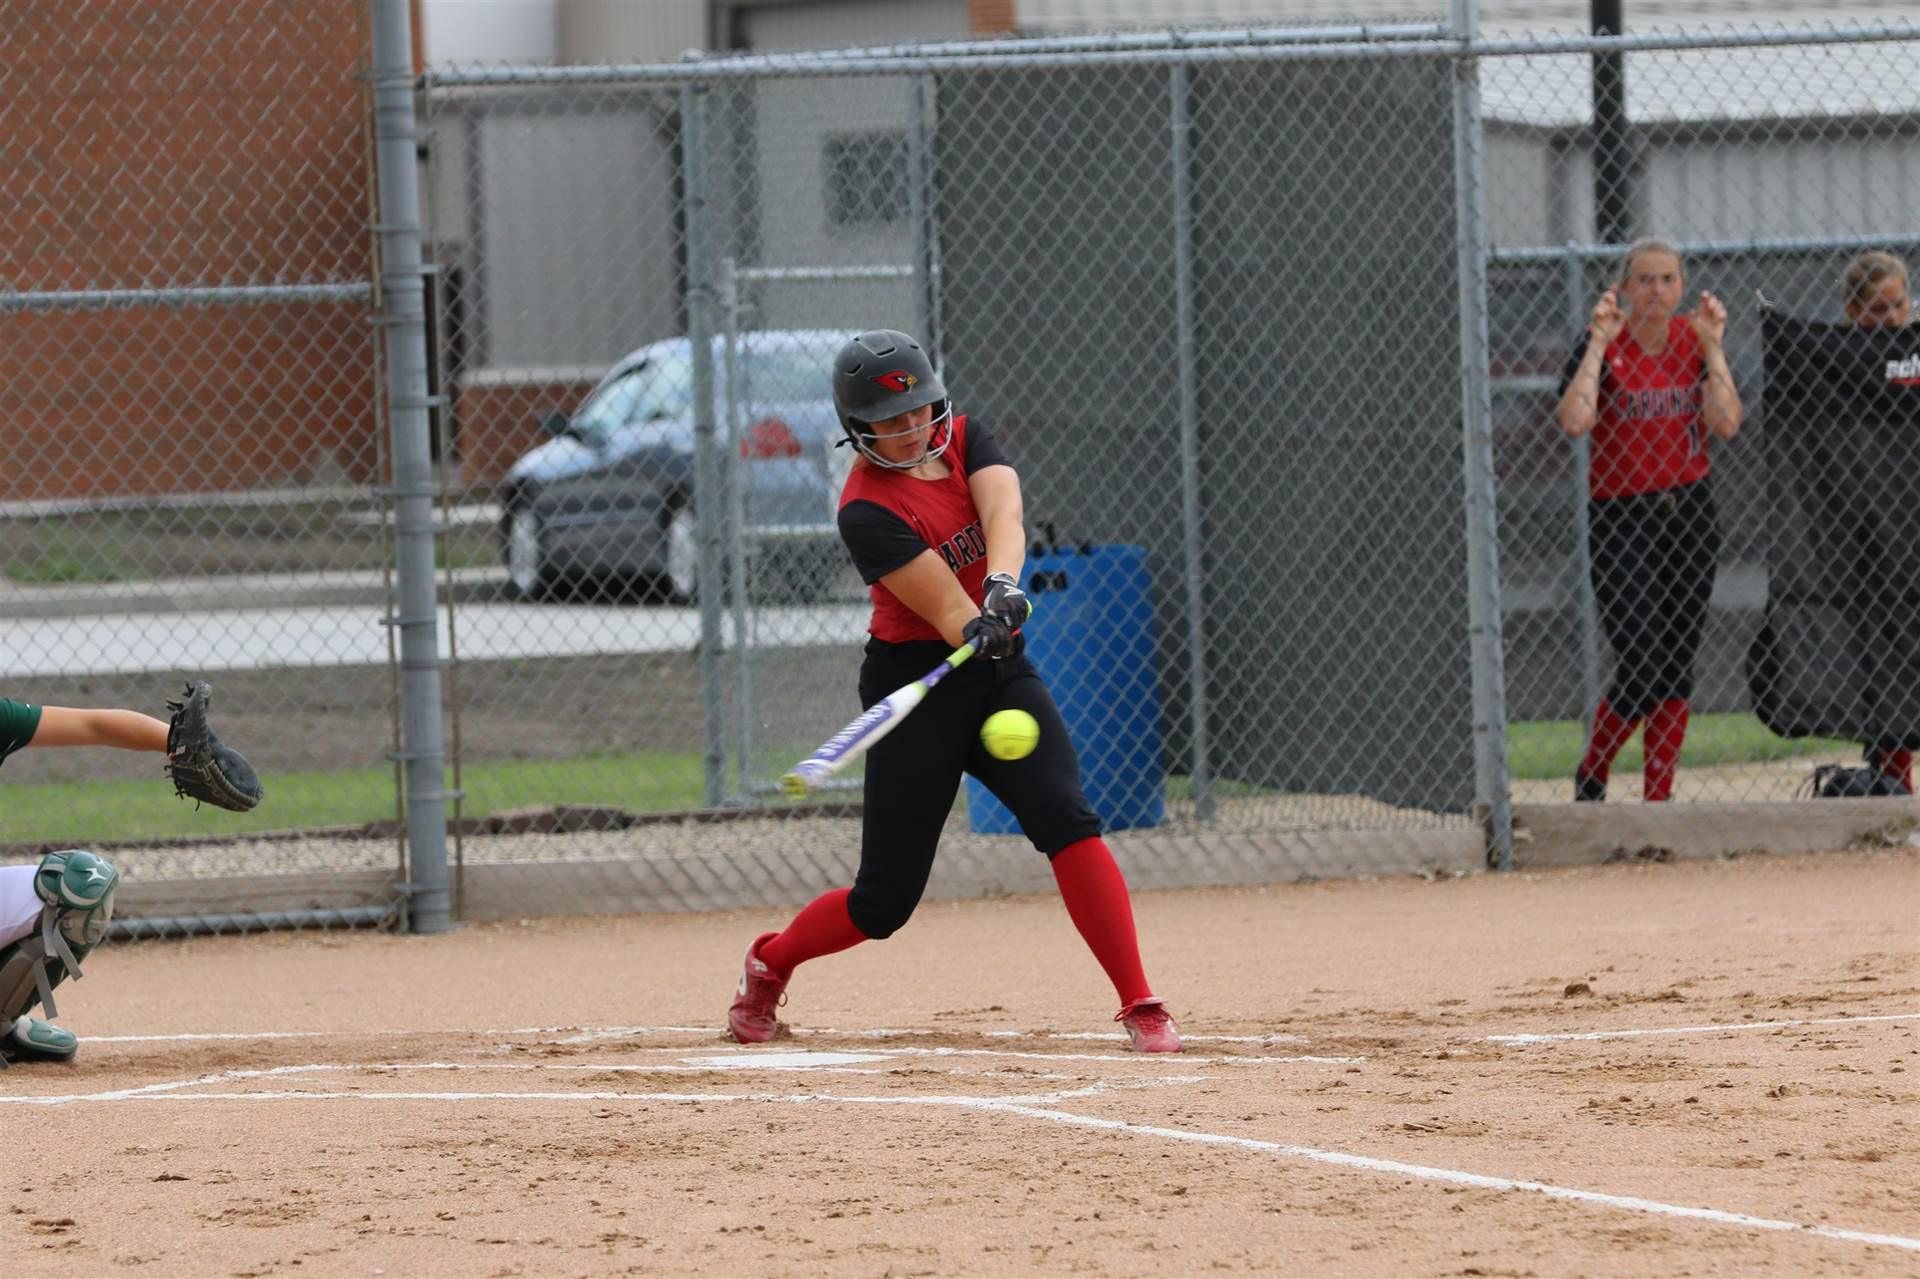 Softball player swinging a bat